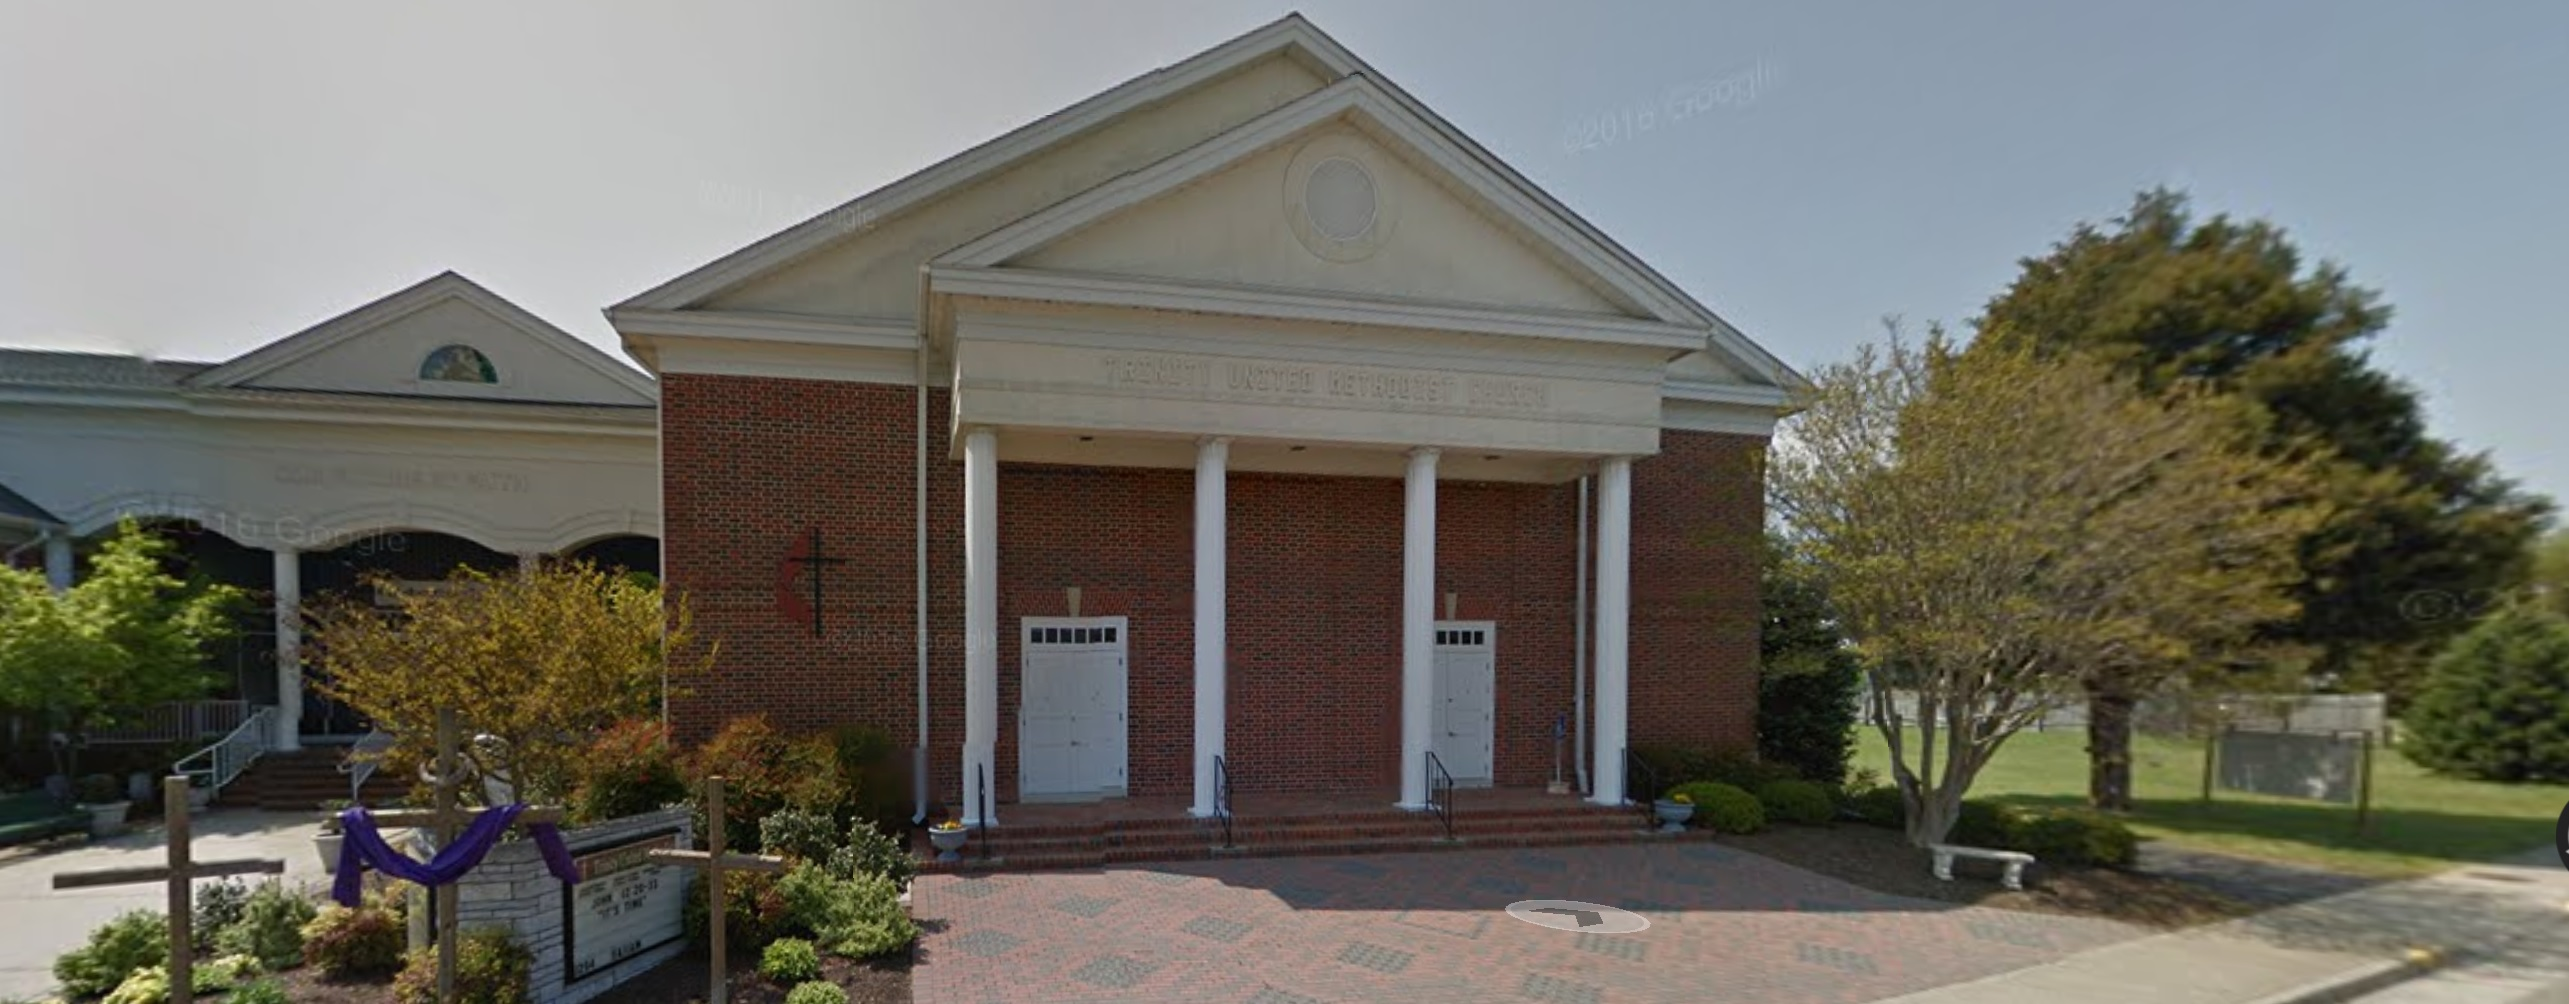 poquoson city county buddhist single men Poquoson city county, va local info poquoson city county has 12,103 residents in 2010-2014, ranked #110 in virginia also poquoson city county races, income, school, weather, environment and other info / rankings.